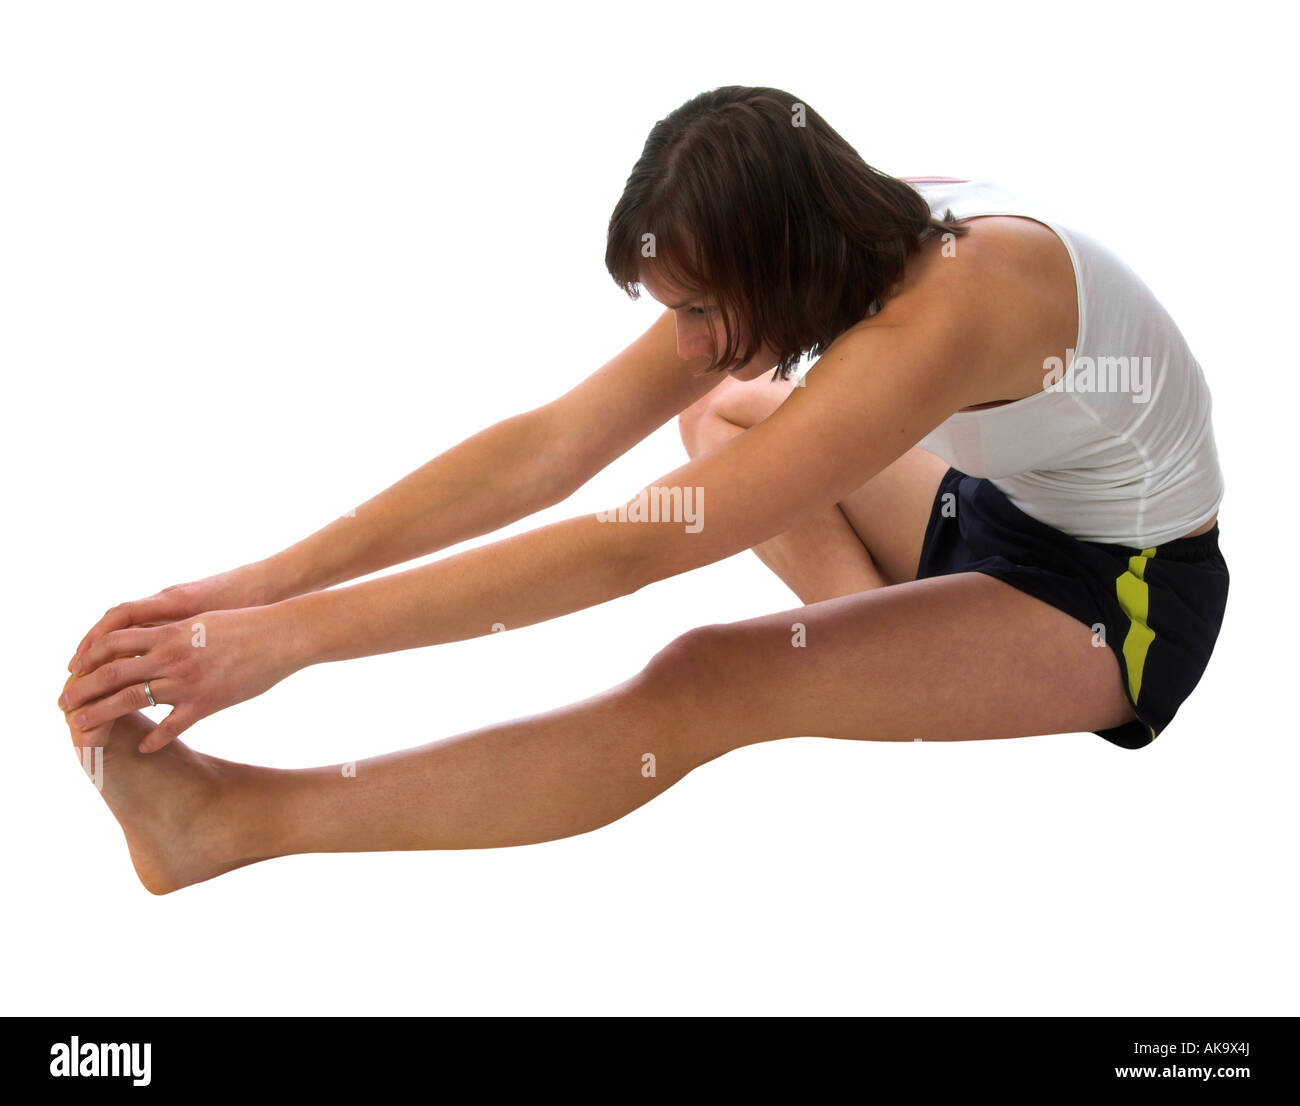 A young woman doing stretching exercises - Stock Image